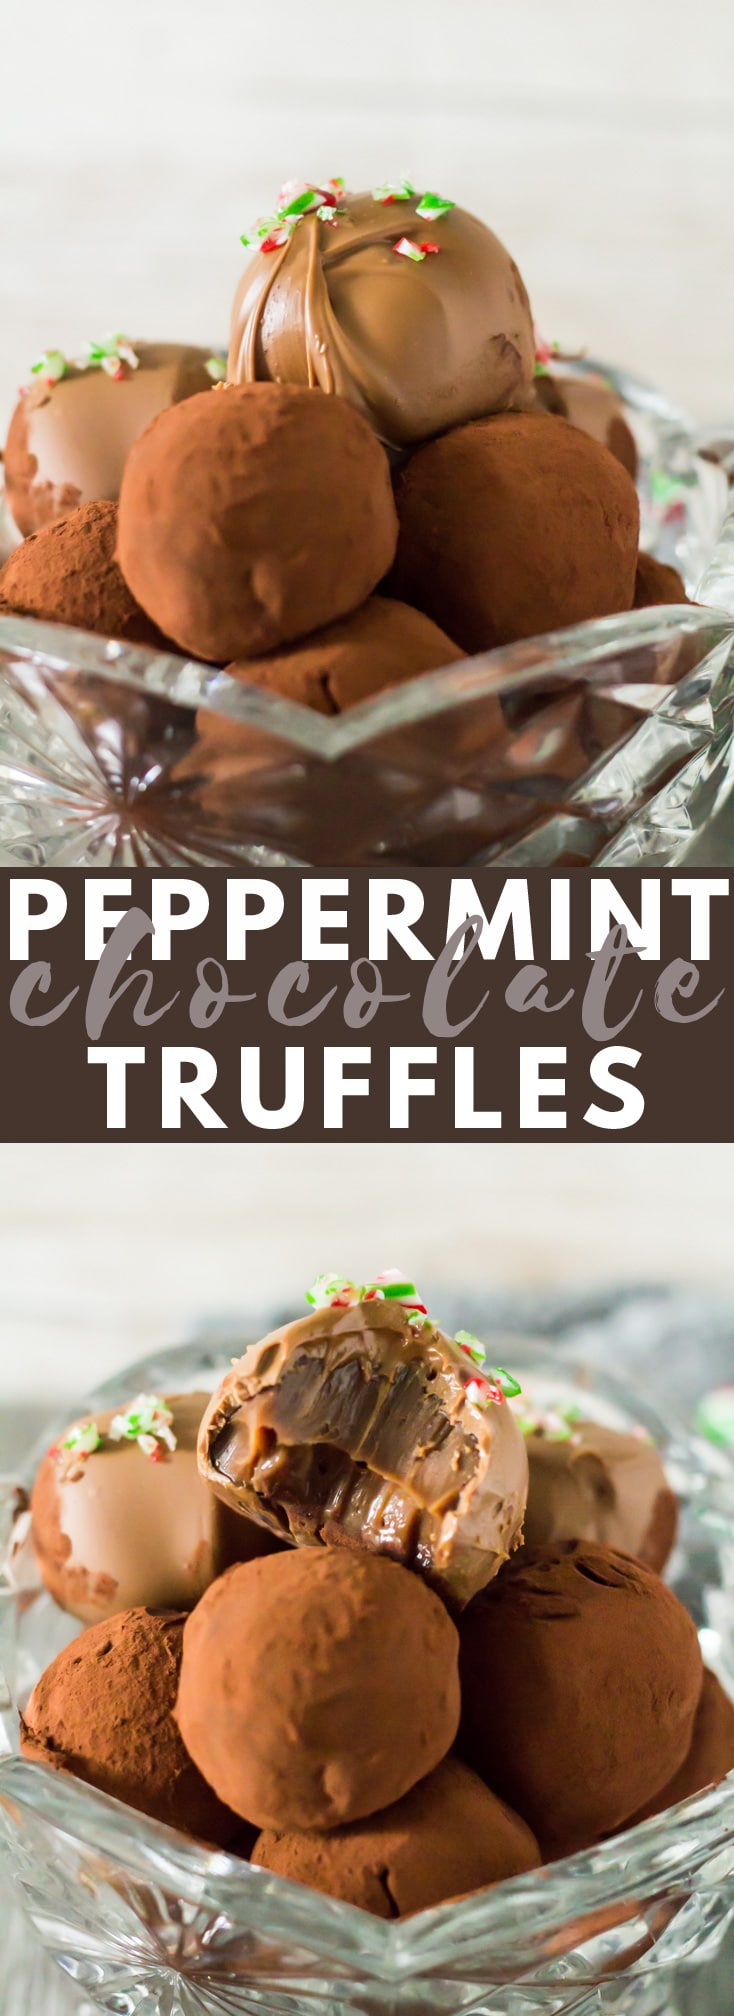 Peppermint Chocolate Truffles - Deliciously indulgent peppermint-infused chocolate truffles that are easy to make, and are perfect for giving at Christmas time!